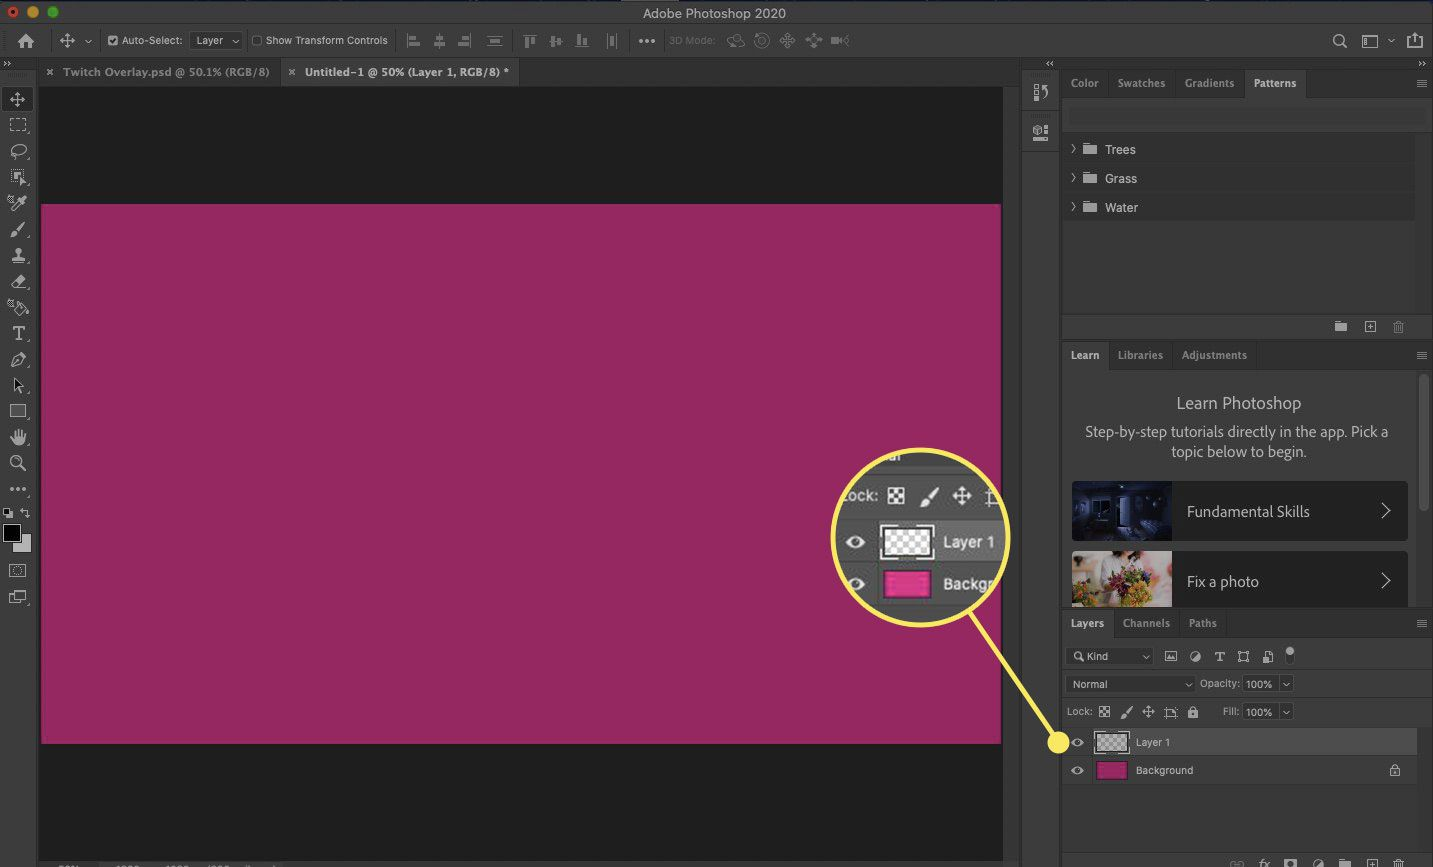 A new layer in Photoshop